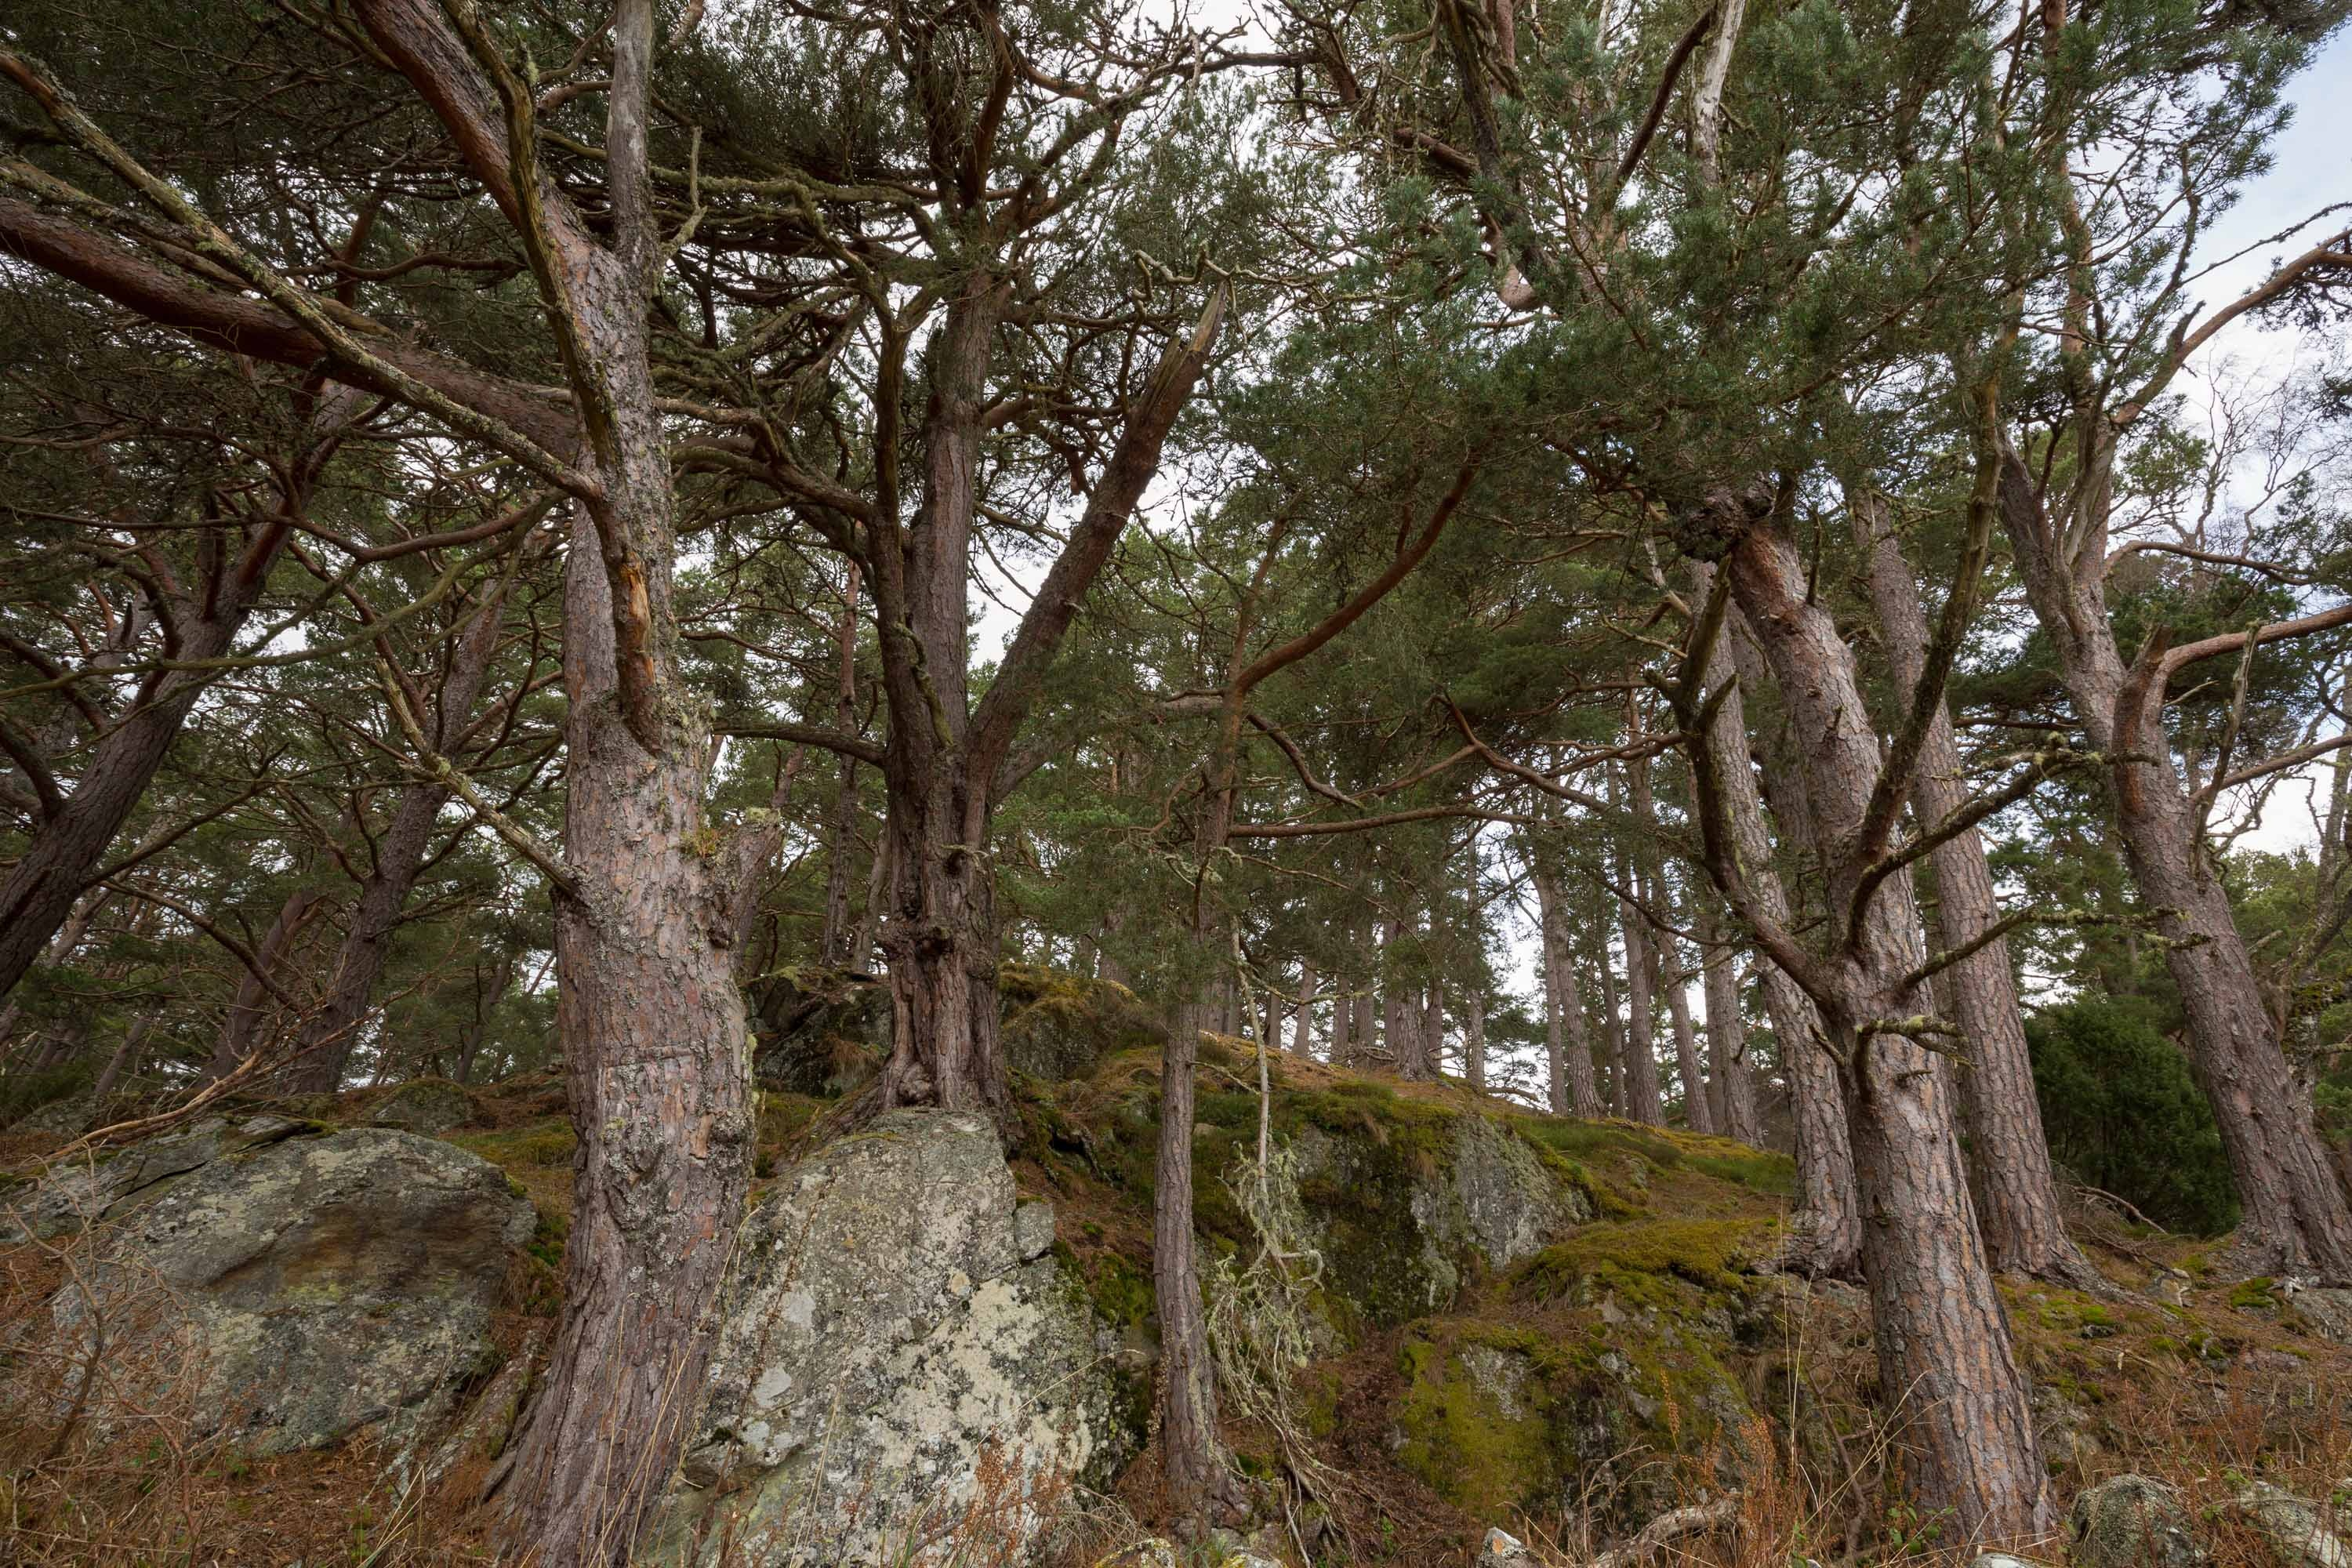 The 'granny' pines of Rothiemurchus